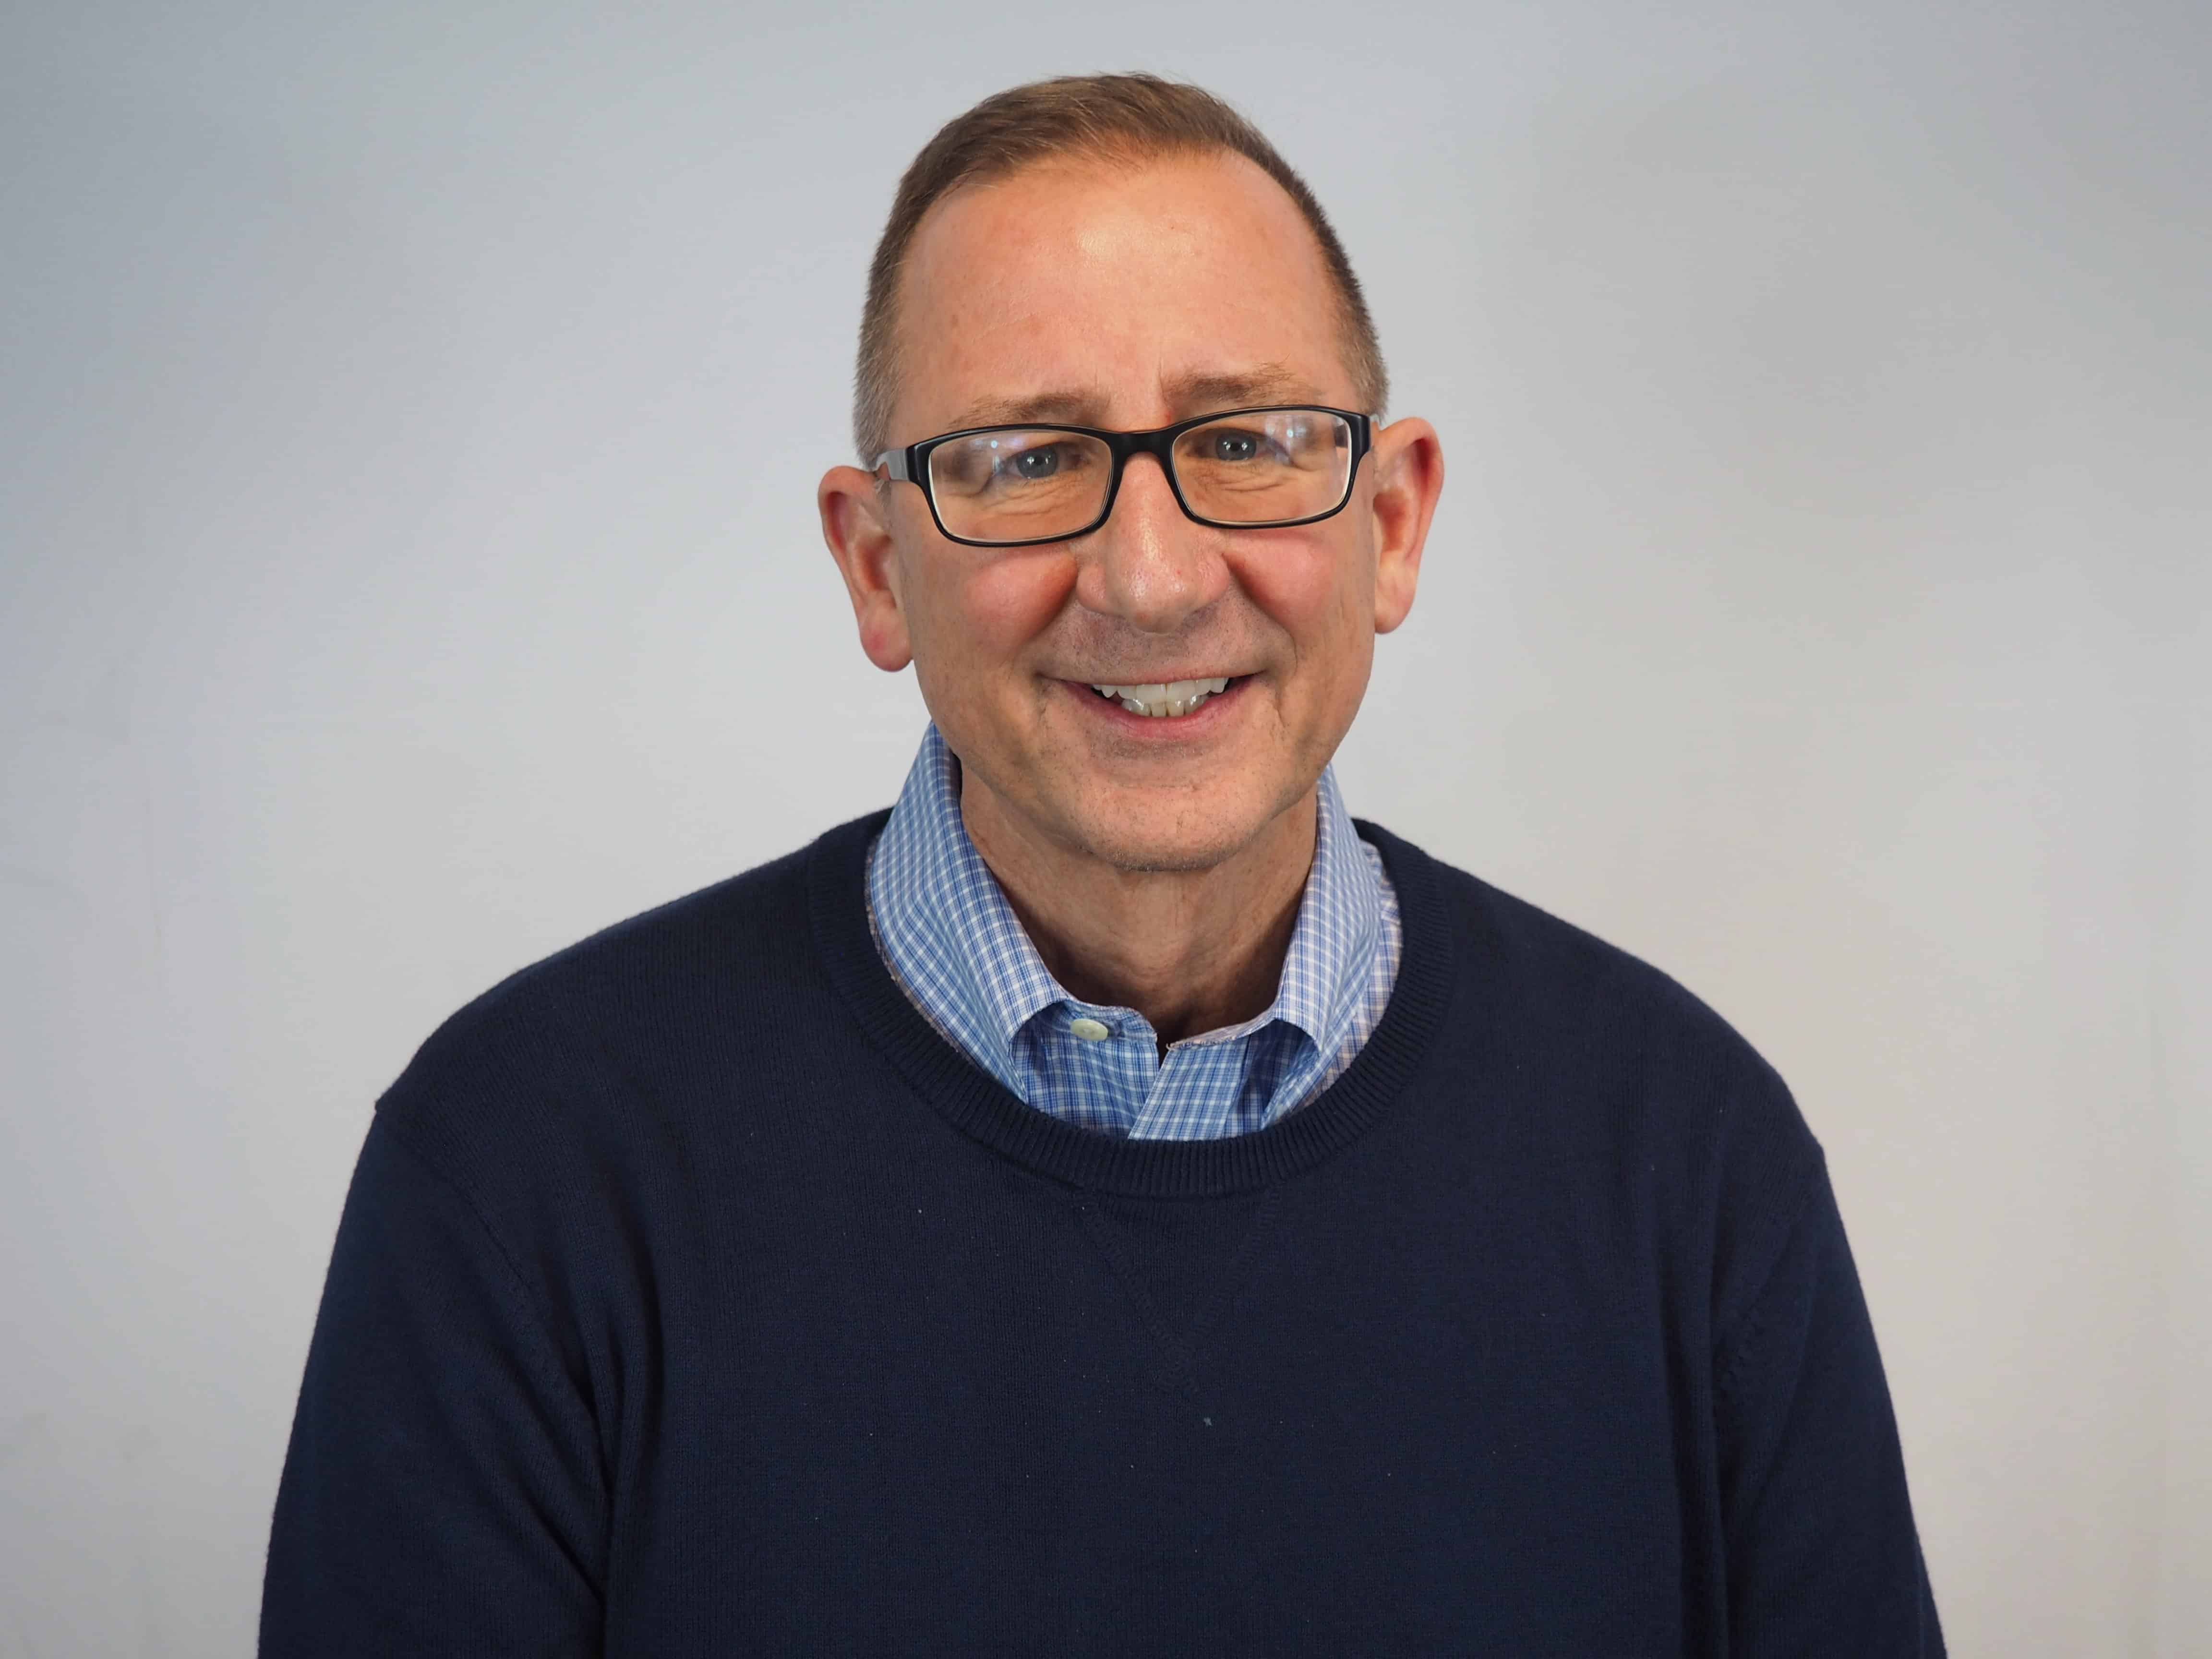 Tim Slattery, Chief Executive Officer